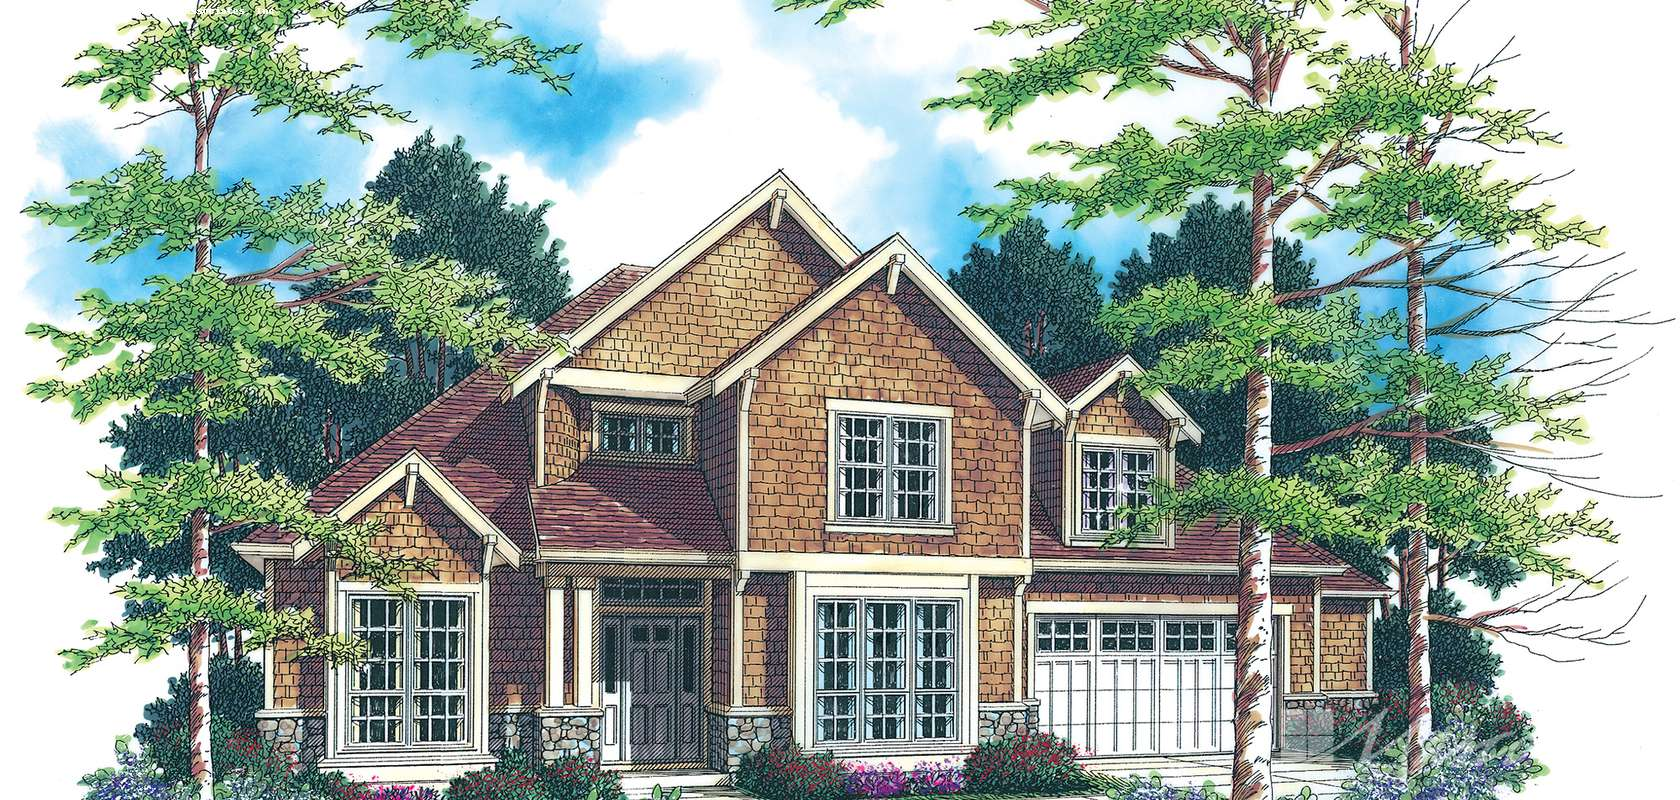 Mascord House Plan 2234B: The Roseland